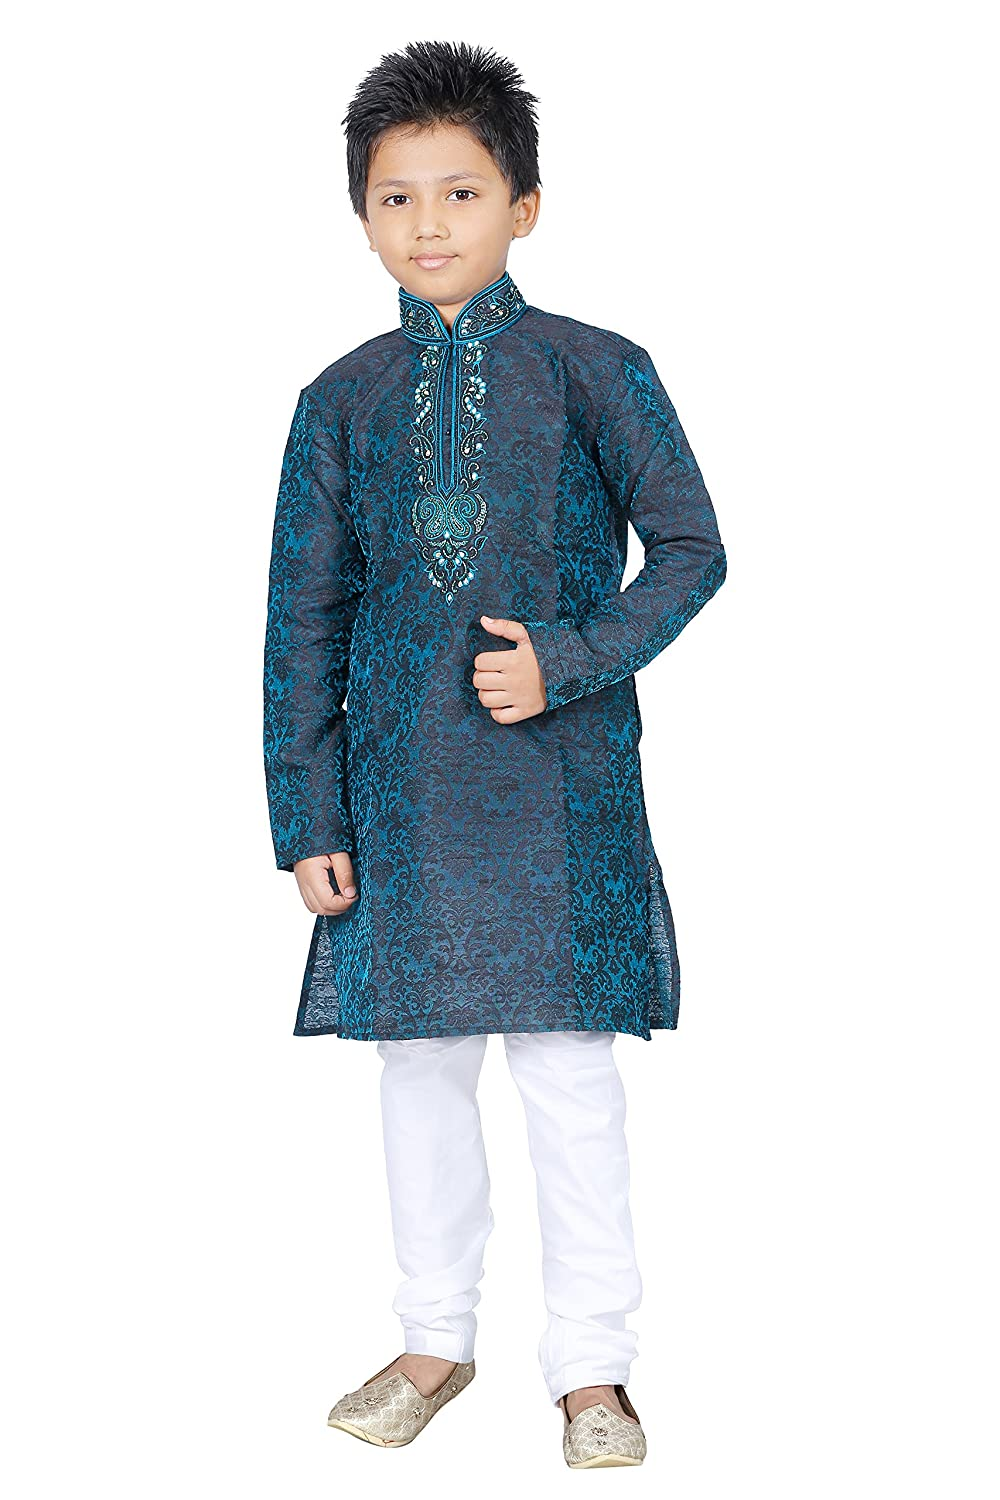 Amazon.com: Indian Kurta Sherwani Boys Suit In Green (2 Pcs) 1-12 ...